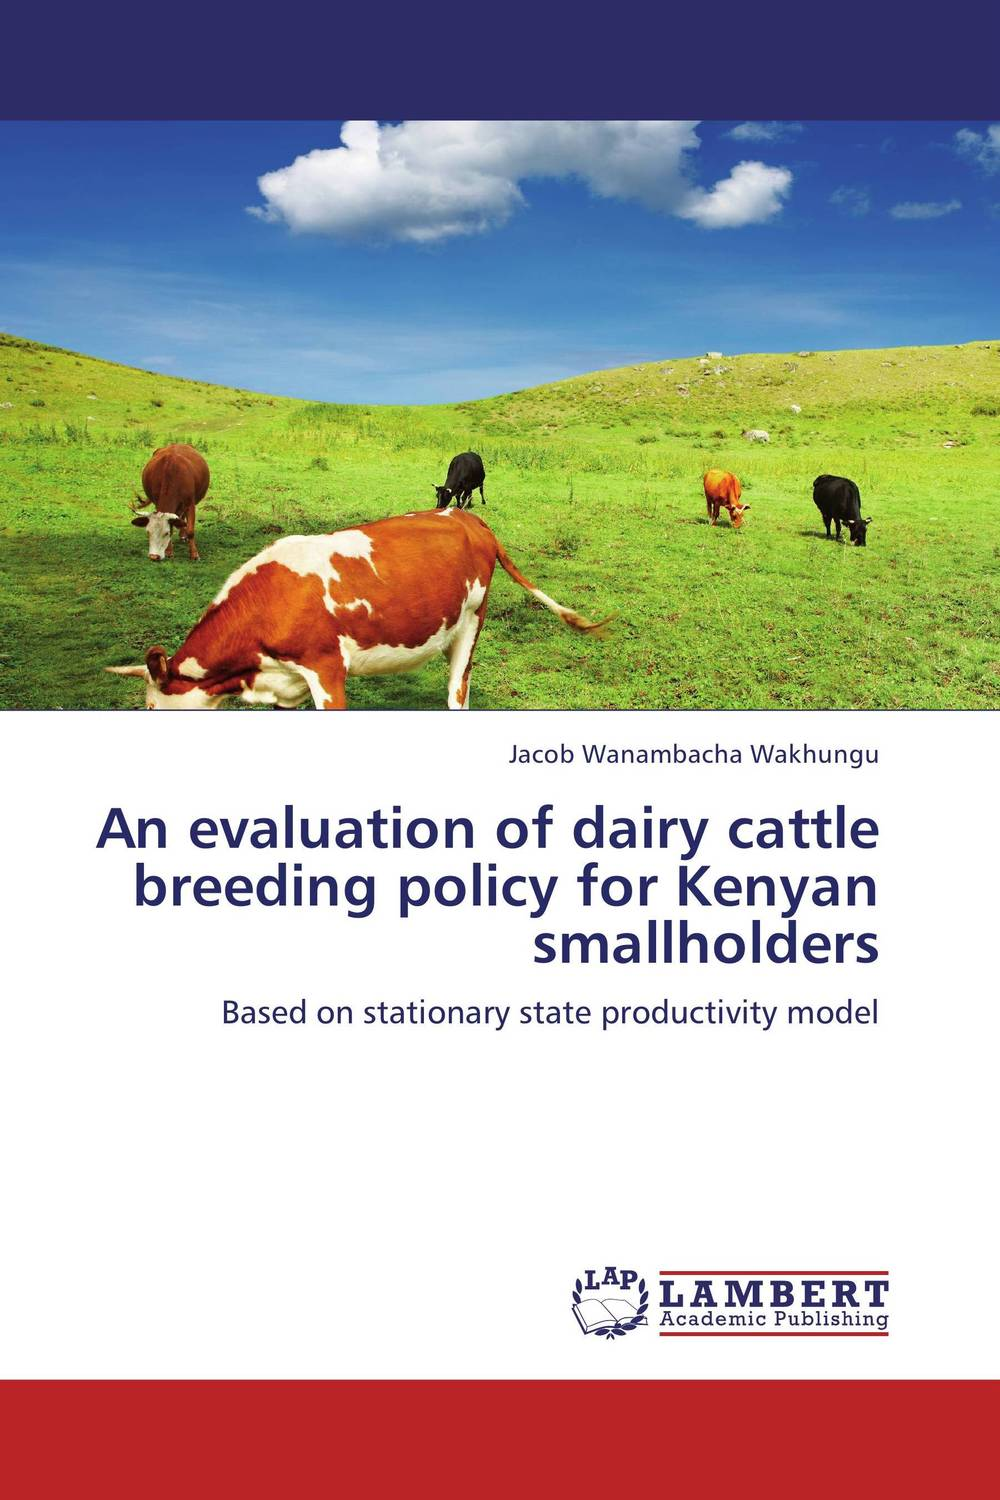 An evaluation of dairy cattle breeding policy for Kenyan smallholders claw disorders in dairy cows under smallholder zero grazing units